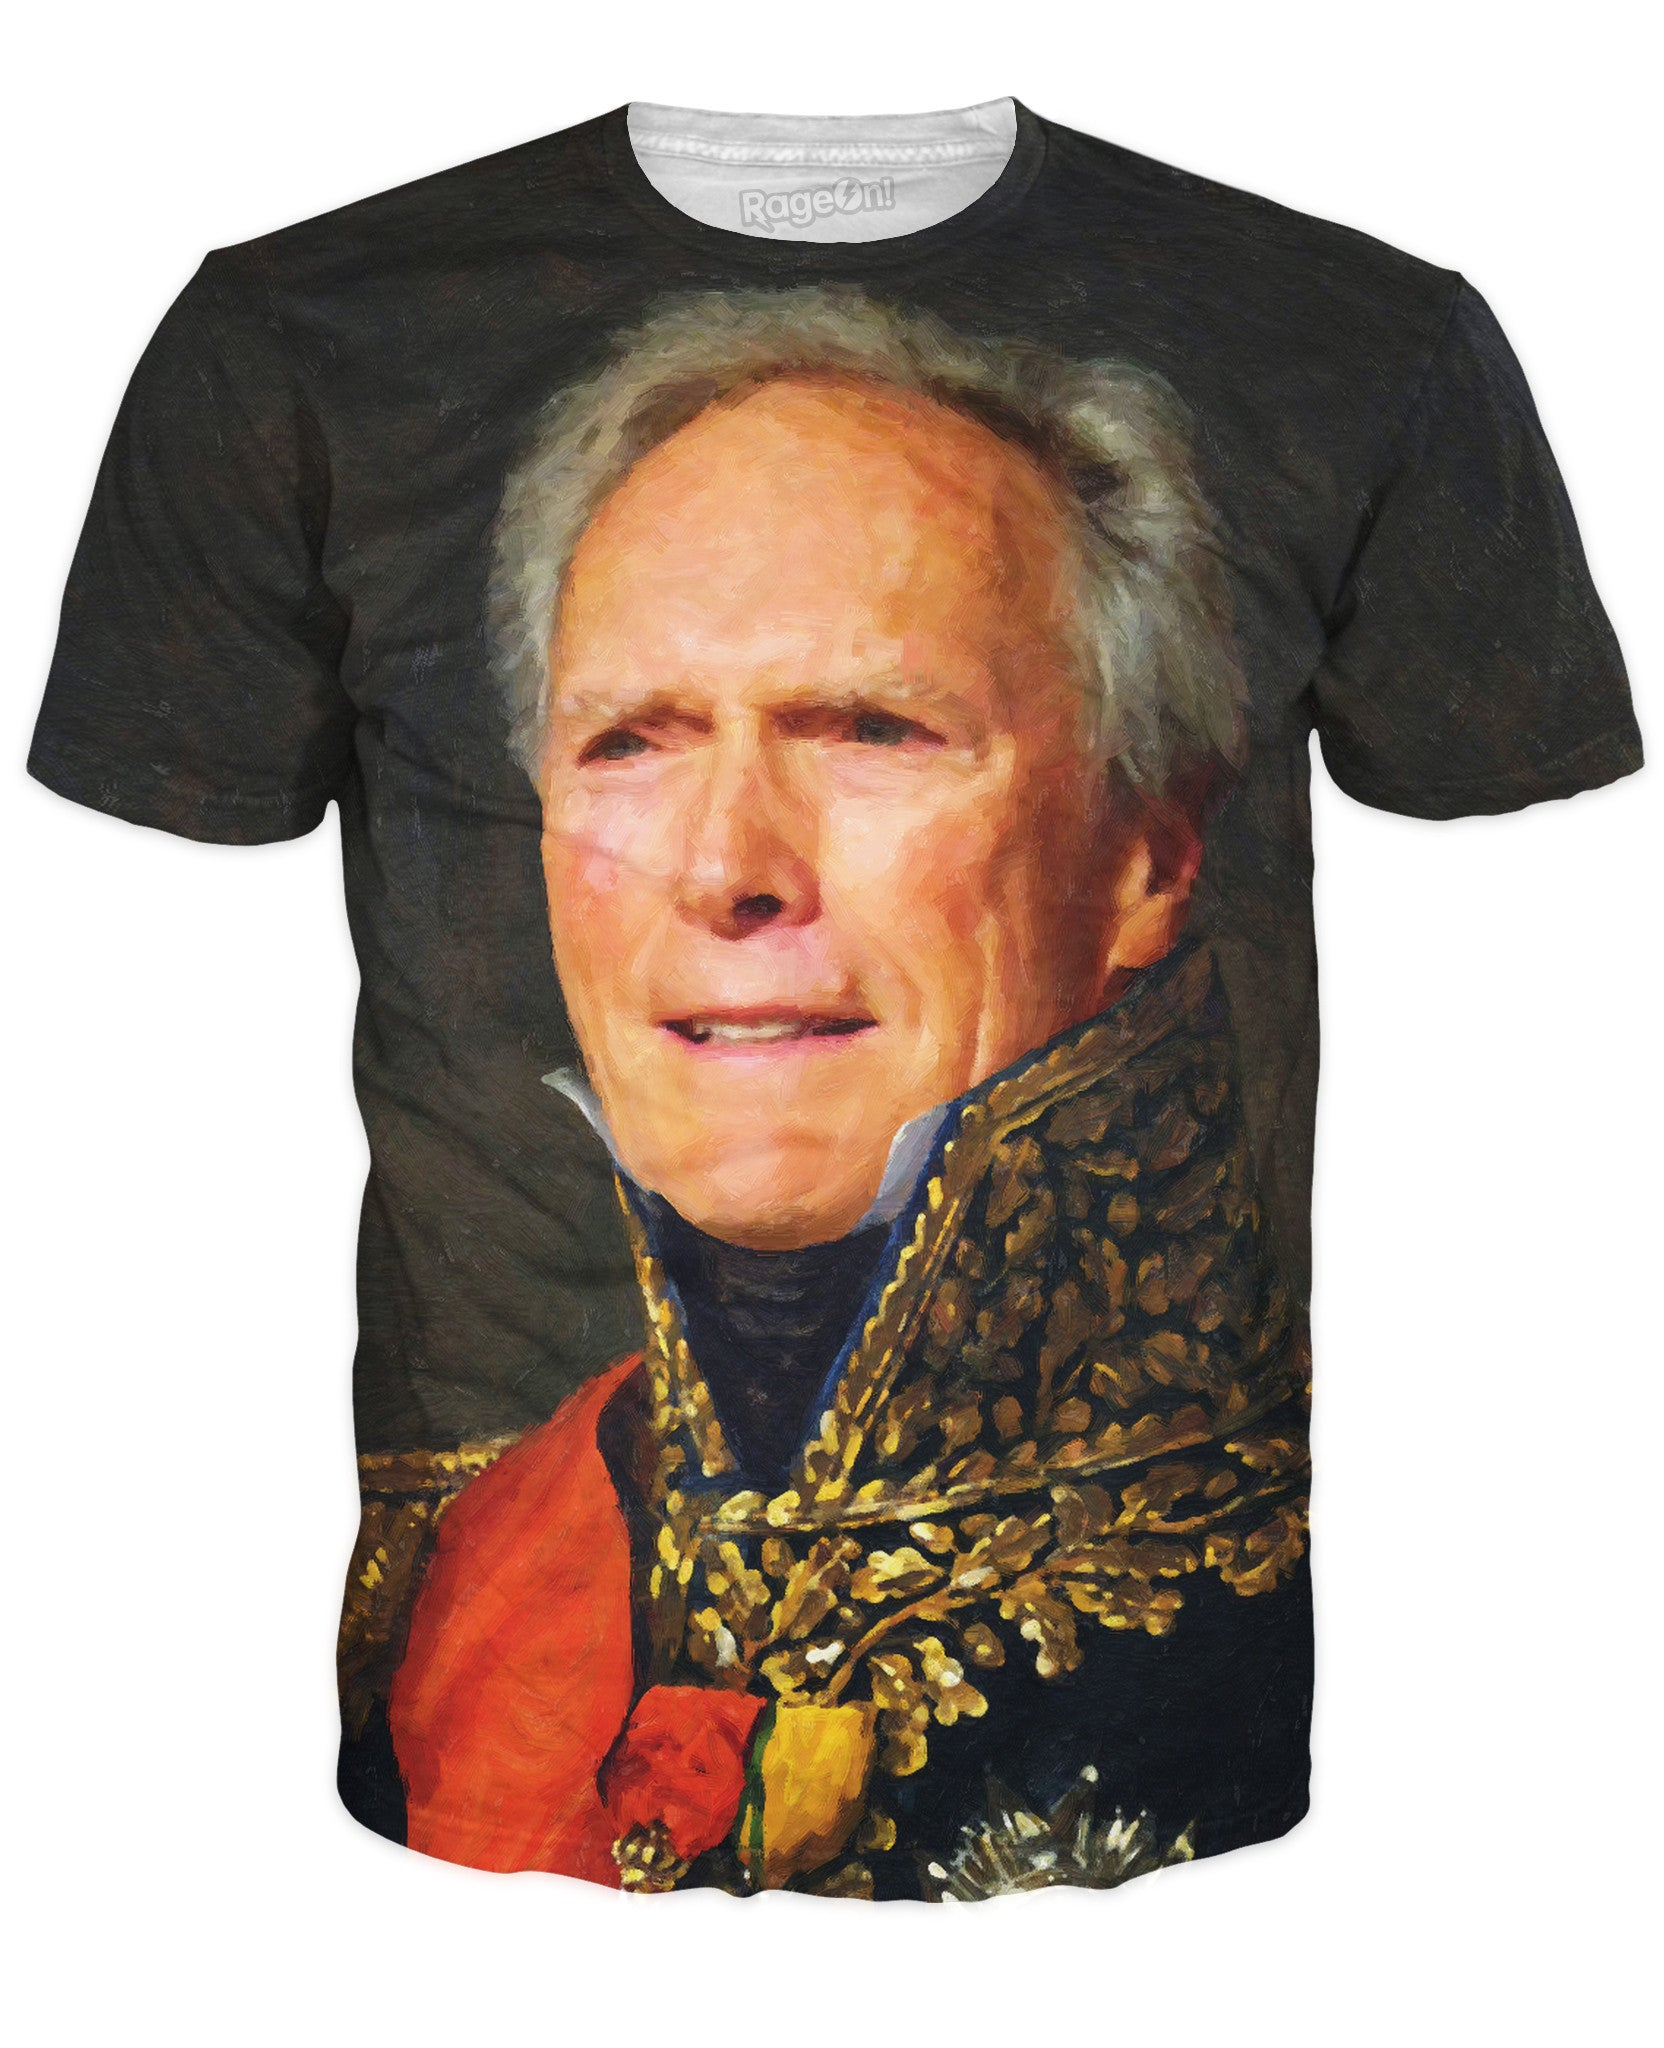 Clint Eastwood T-Shirt - TShirtsRUS.co